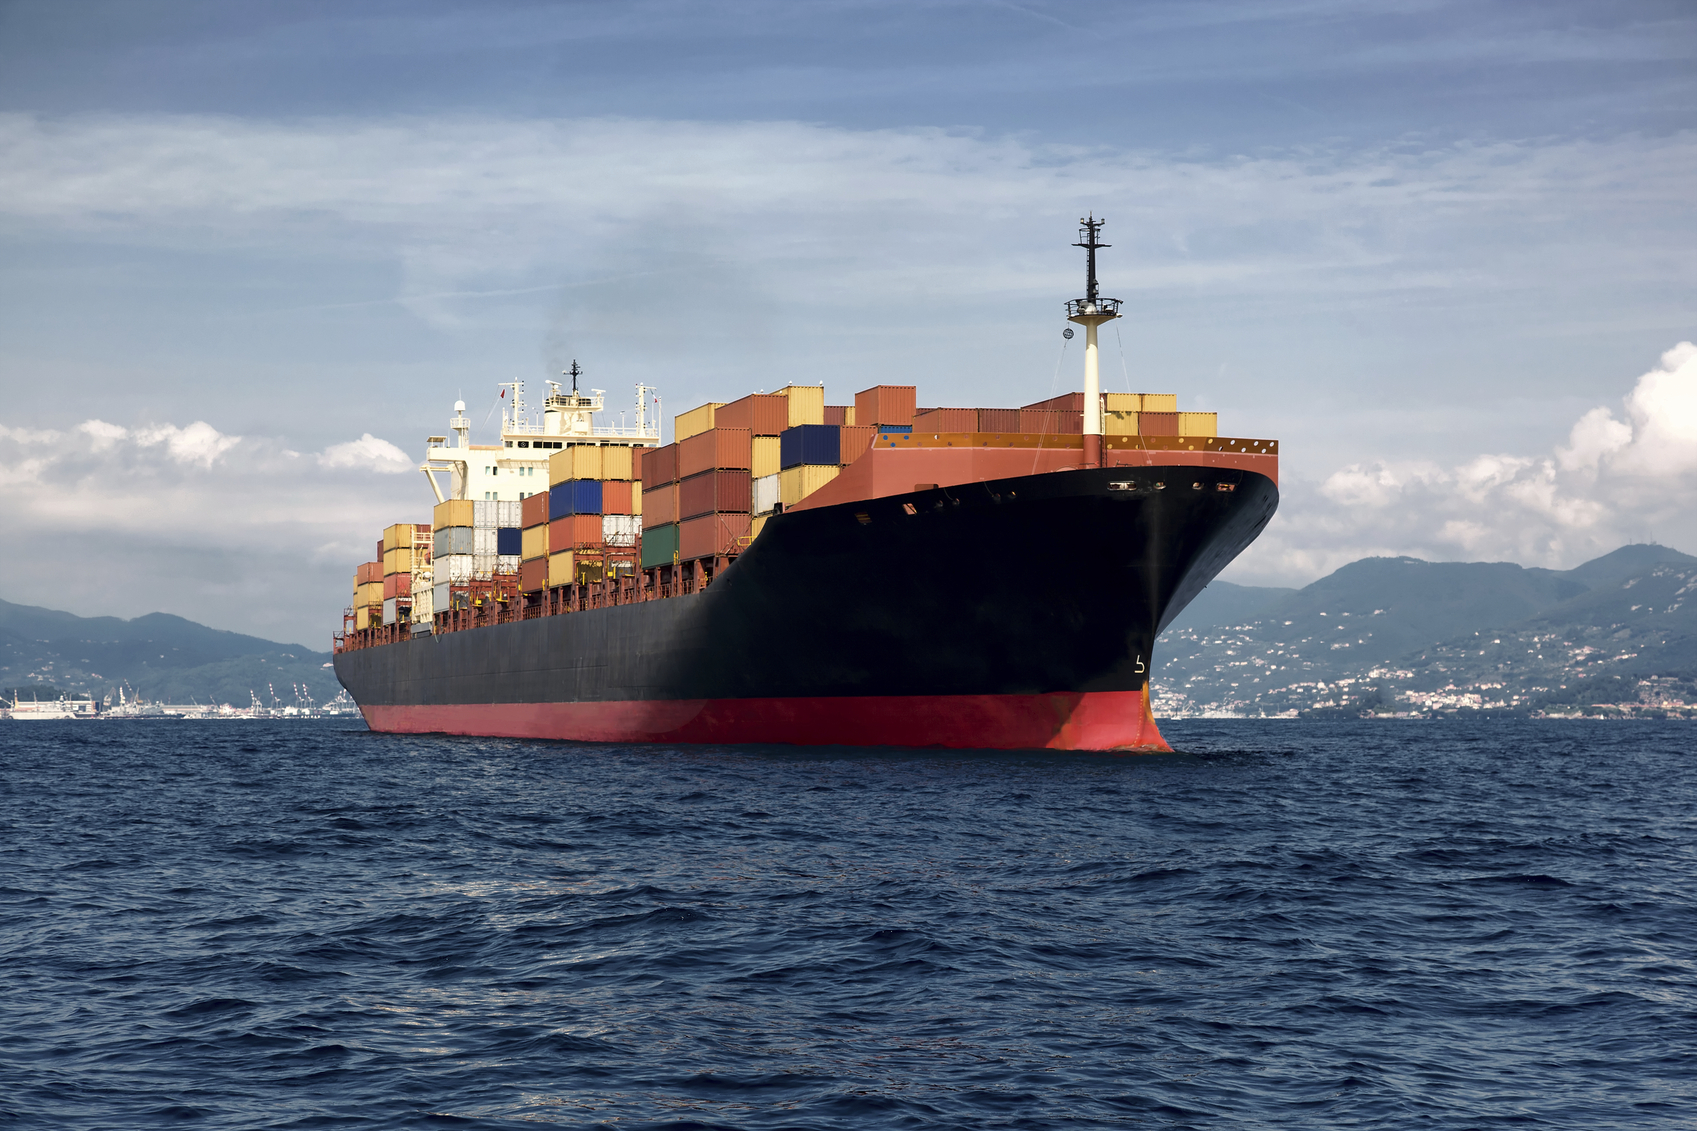 Welch Refrigeration Provide Marine Refrigeration Services On Merchant Container Ships